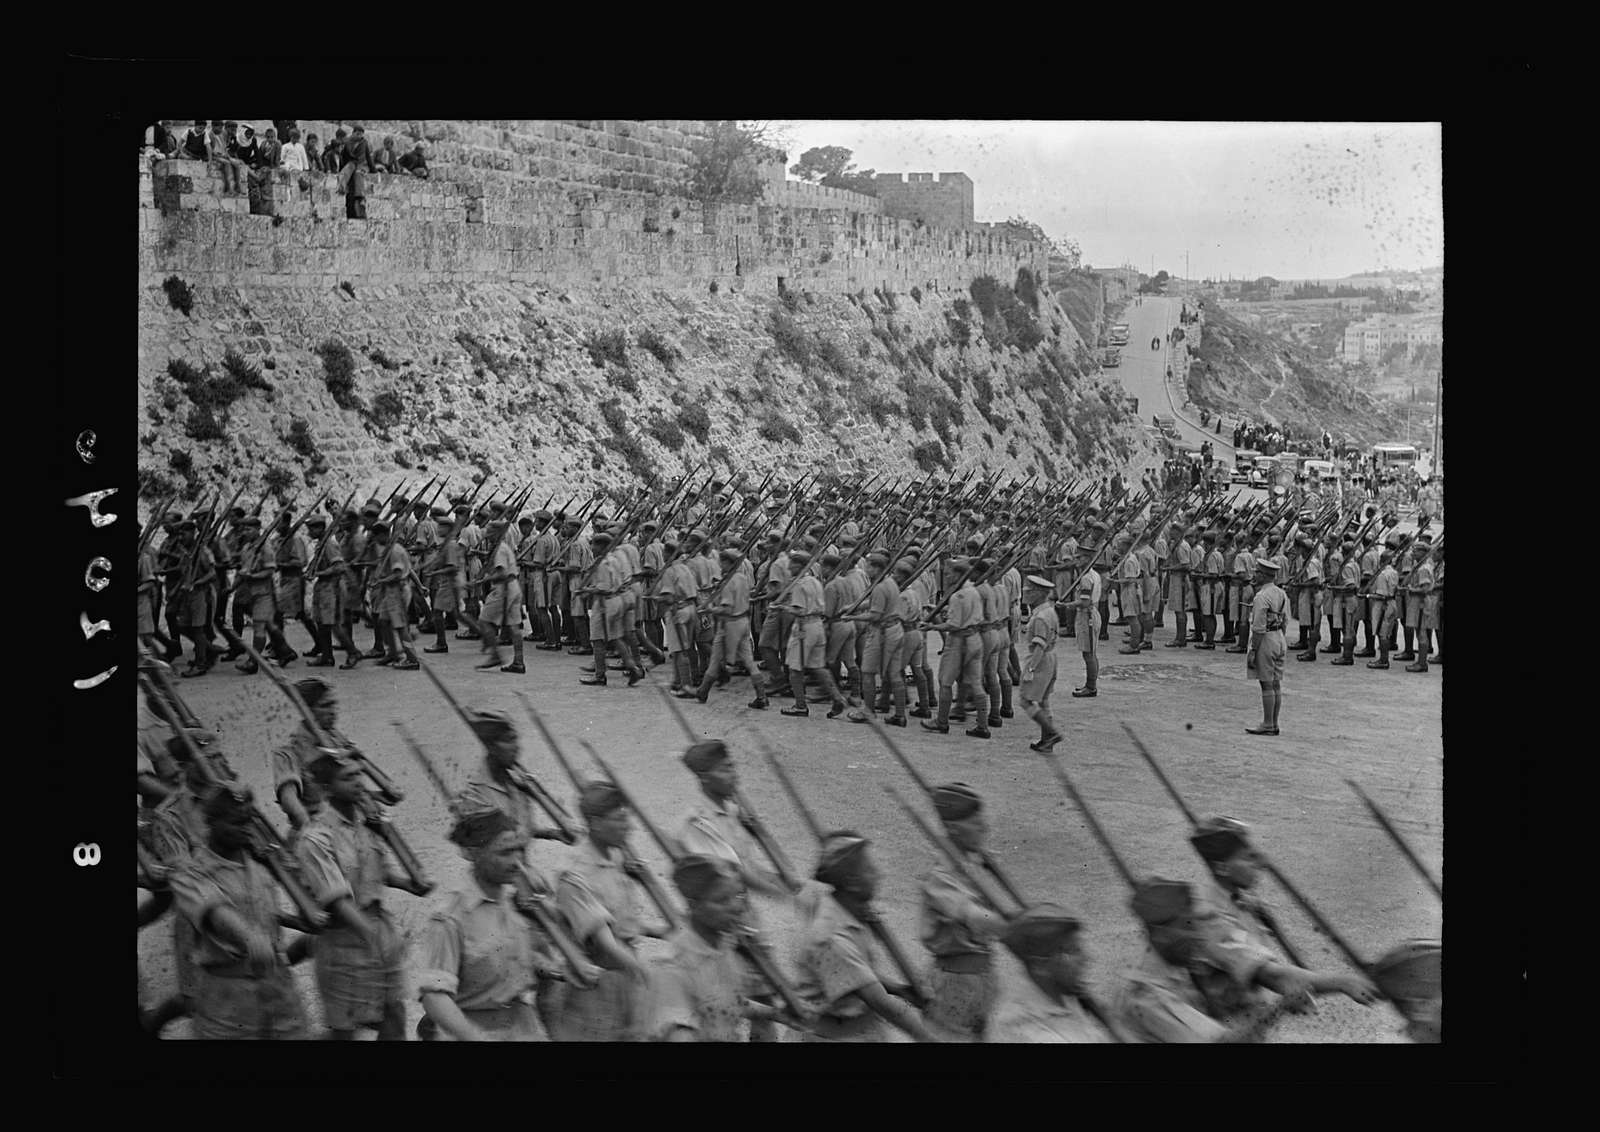 Arab recruits on parade in Jerusalem. Recruits on the March below Citadel. Taken while speeches were given